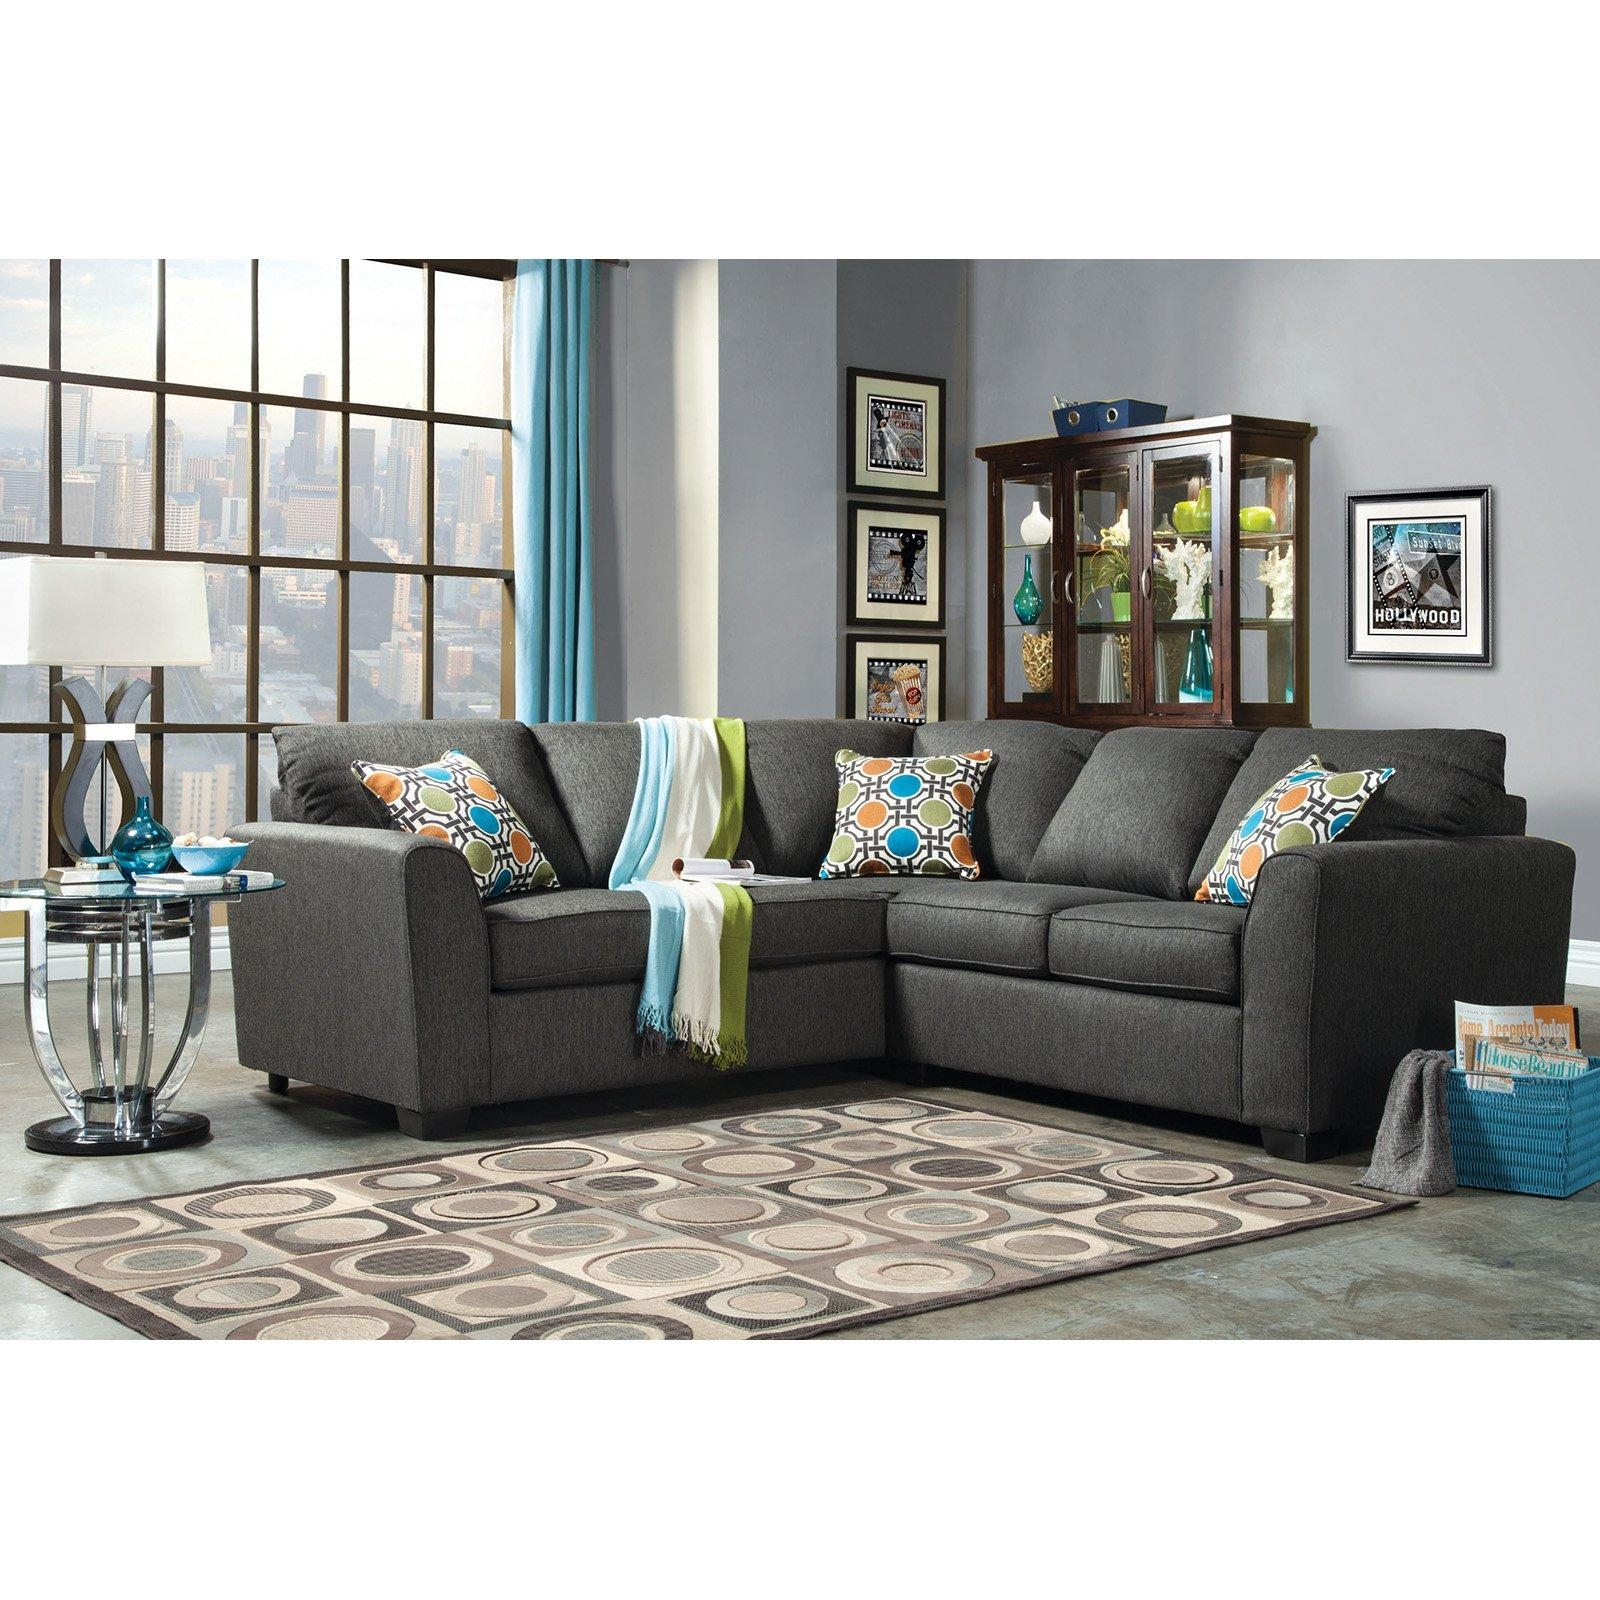 Sofas : Fabulous Modern Leather Sectional Best Sectional Sofa Two In Small 2 Piece Sectional Sofas (Image 13 of 23)